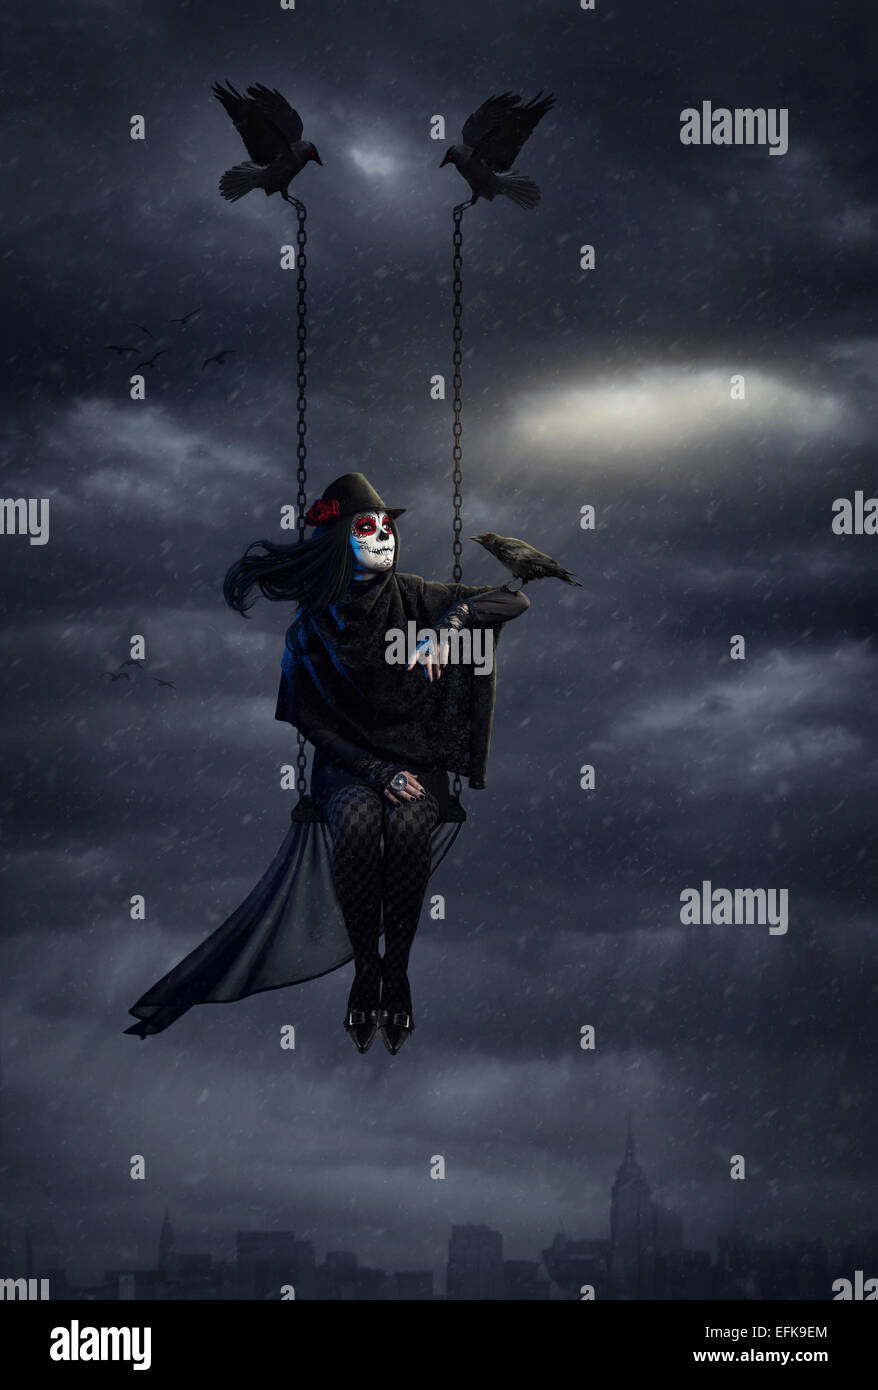 Woman with sugar skull makeup holding black crow and flying above the city at dark overcast sky with snowfall - Stock Image